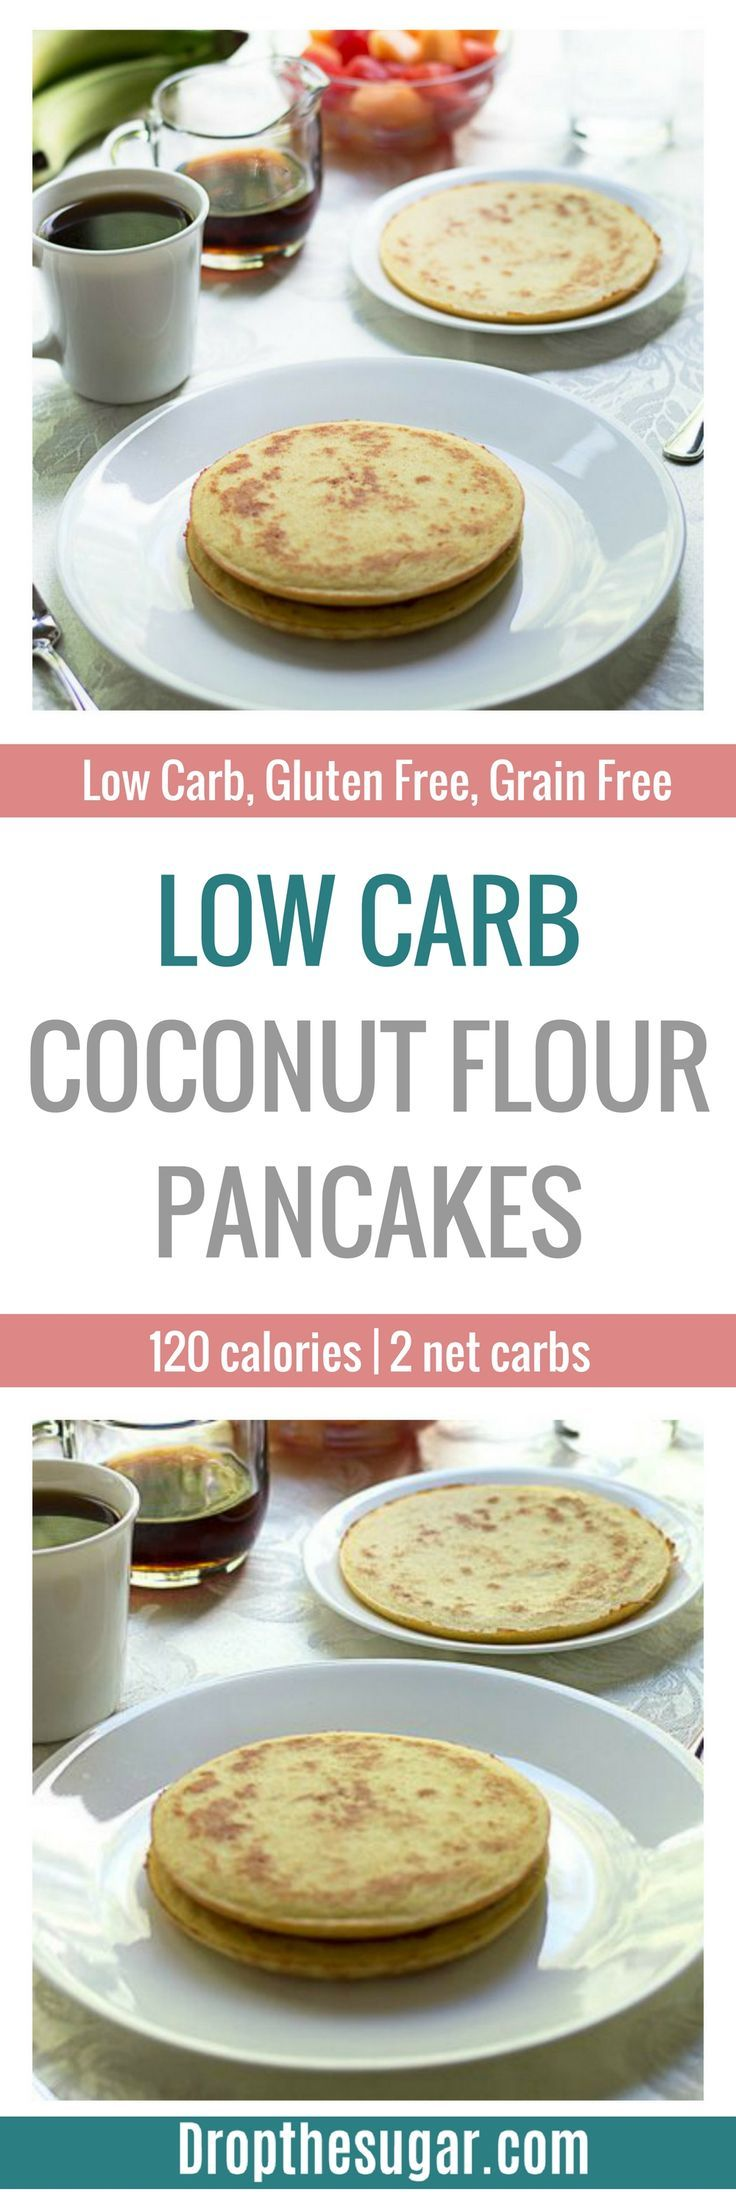 Low Carb Coconut Flour Pancakes | a low carb pancake recipe made entirely with coconut flour. If you're sick of eggs, then make sure to add this to your low carb breakfast list! Pin now to make later!